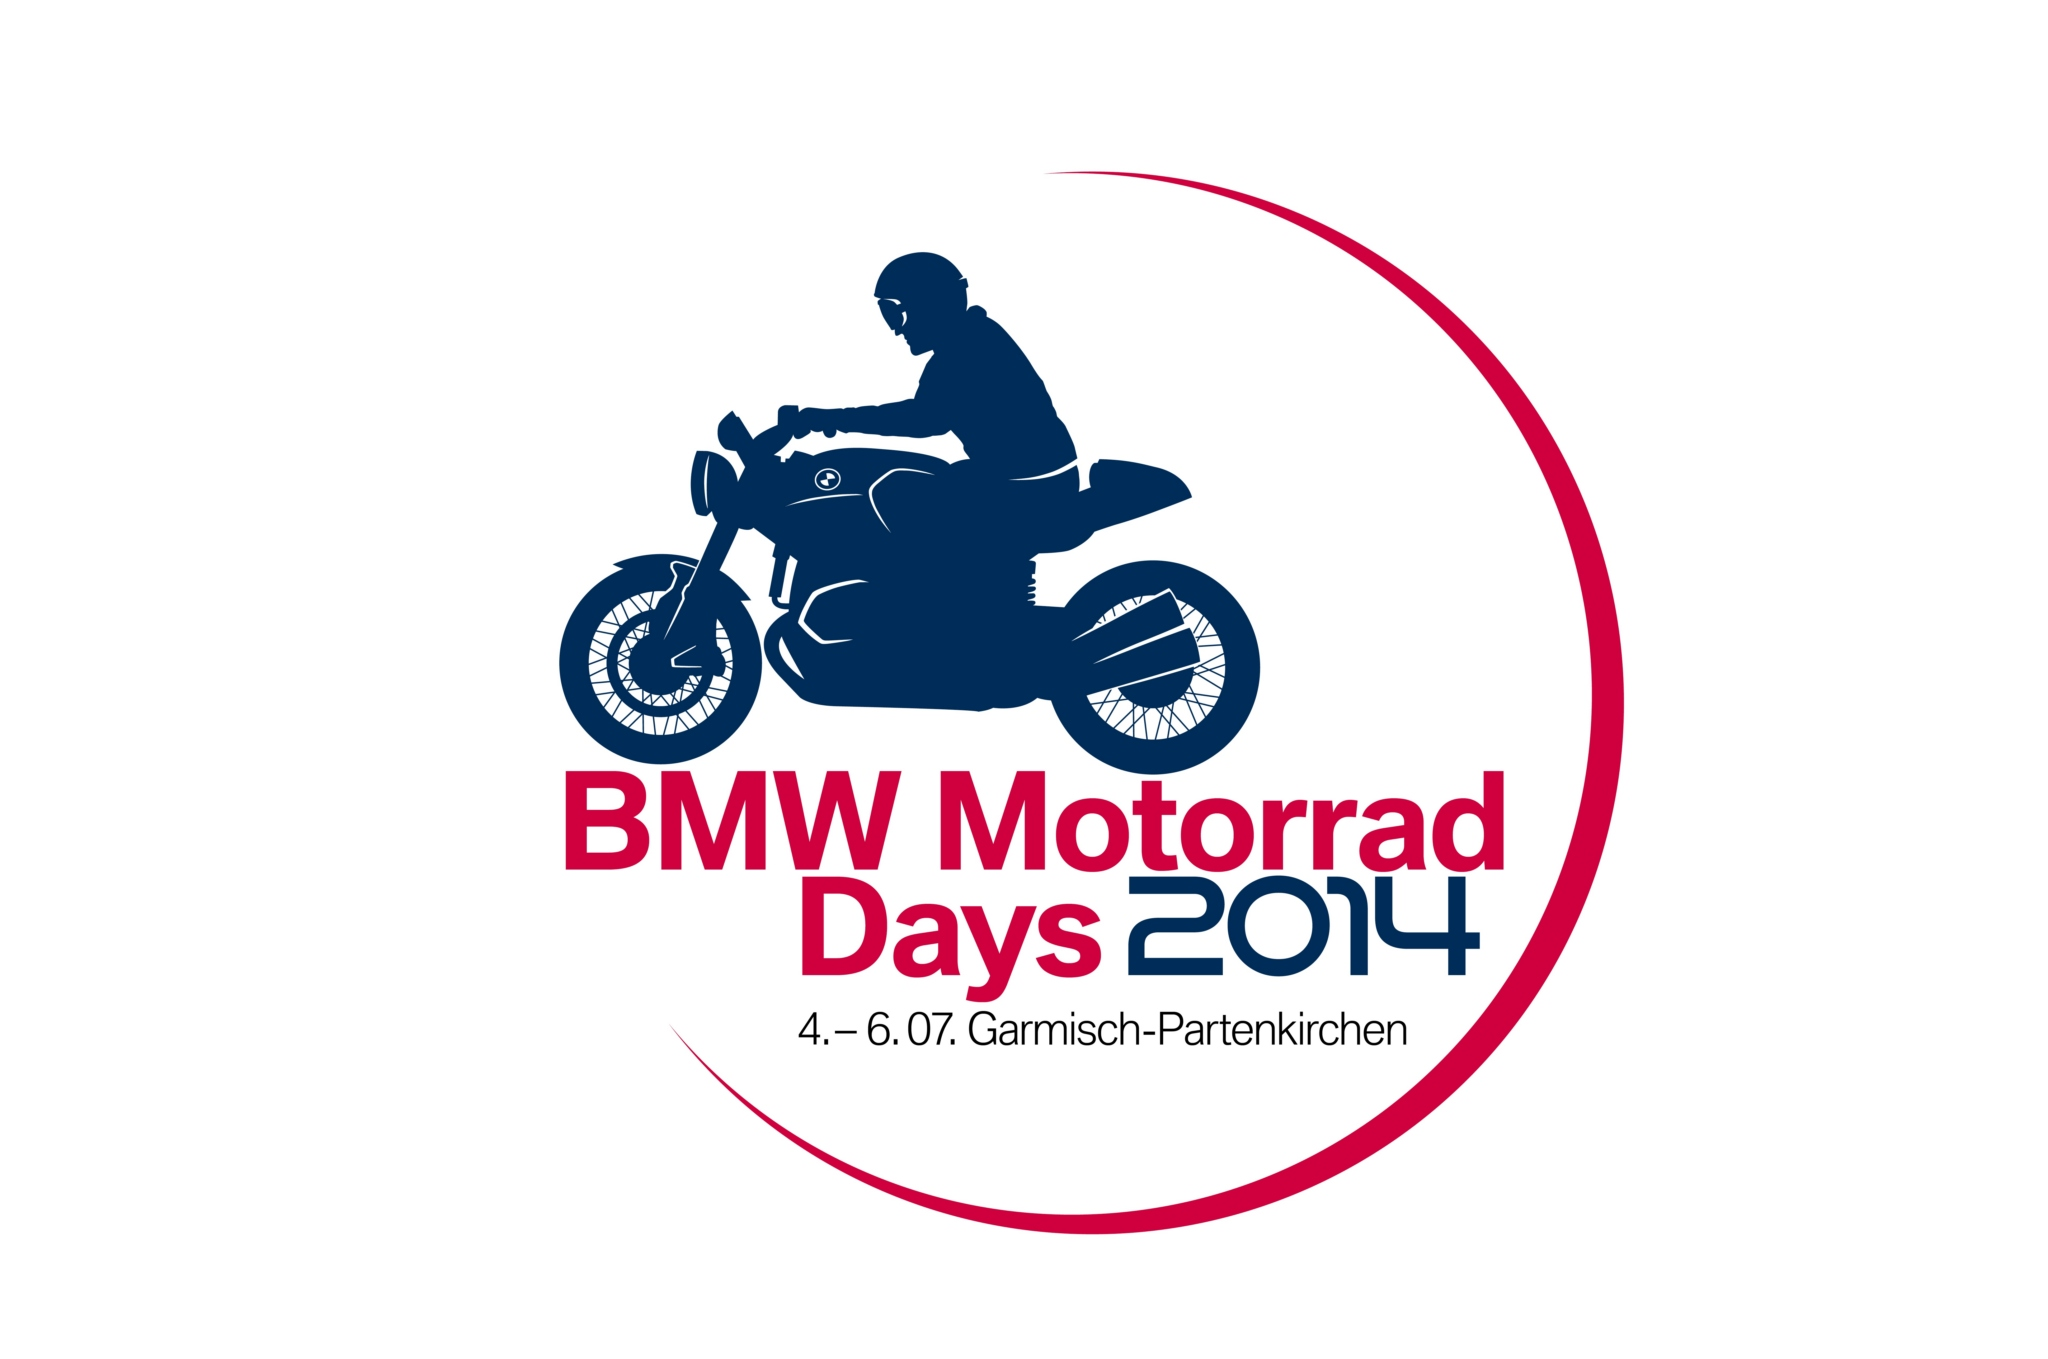 2014 bmw motorrad days dates and attractions announced - autoevolution